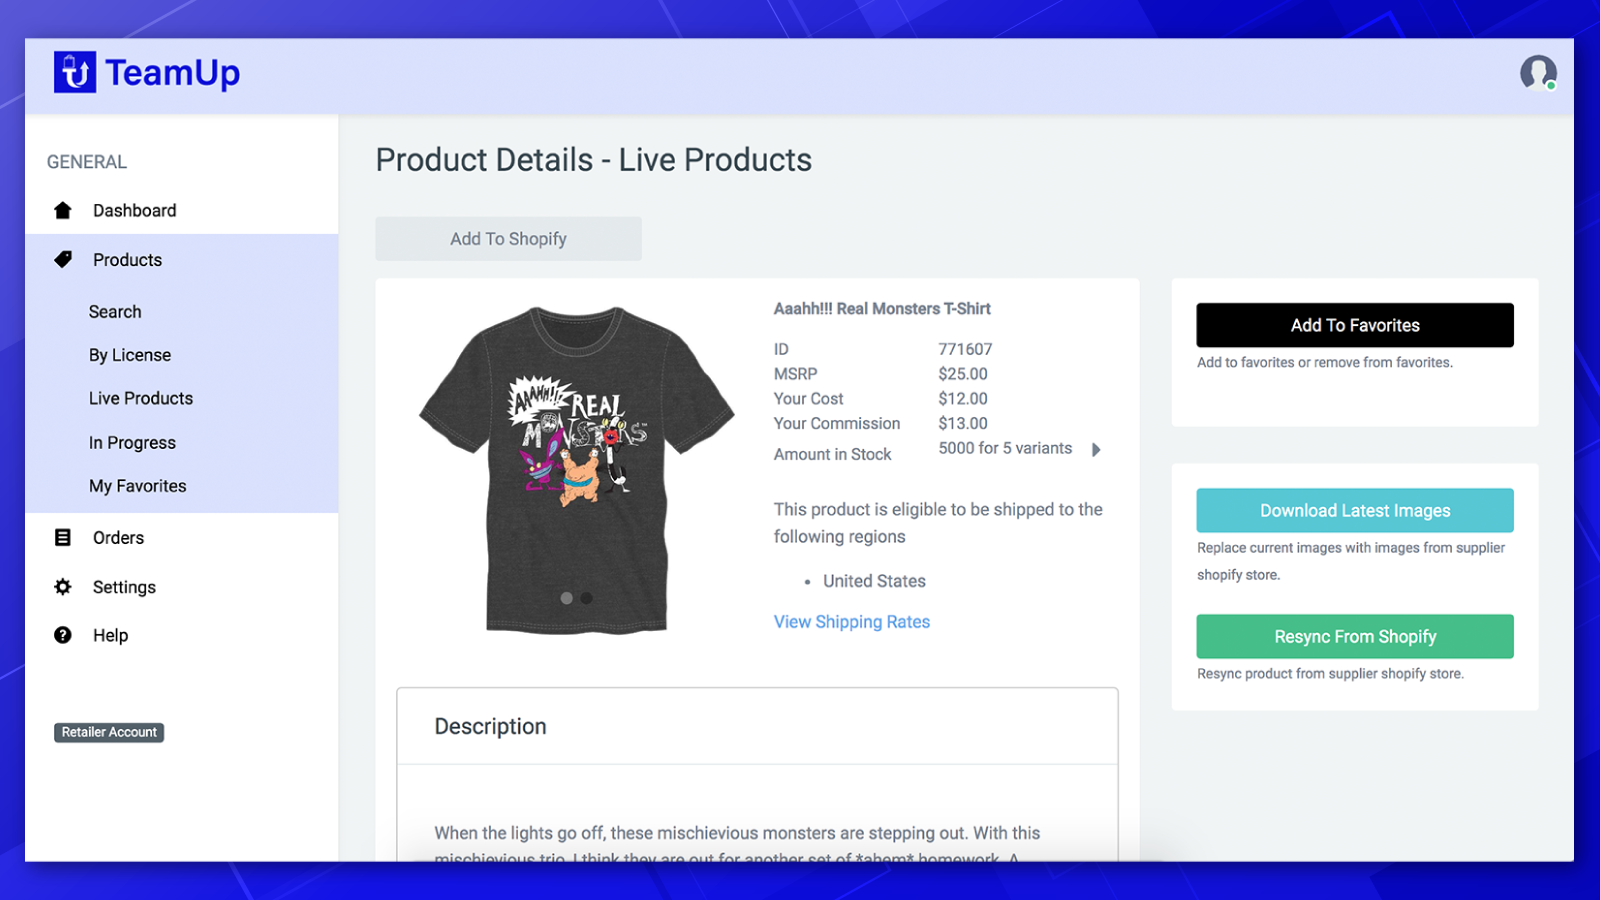 Product details page contains all the most important item info.